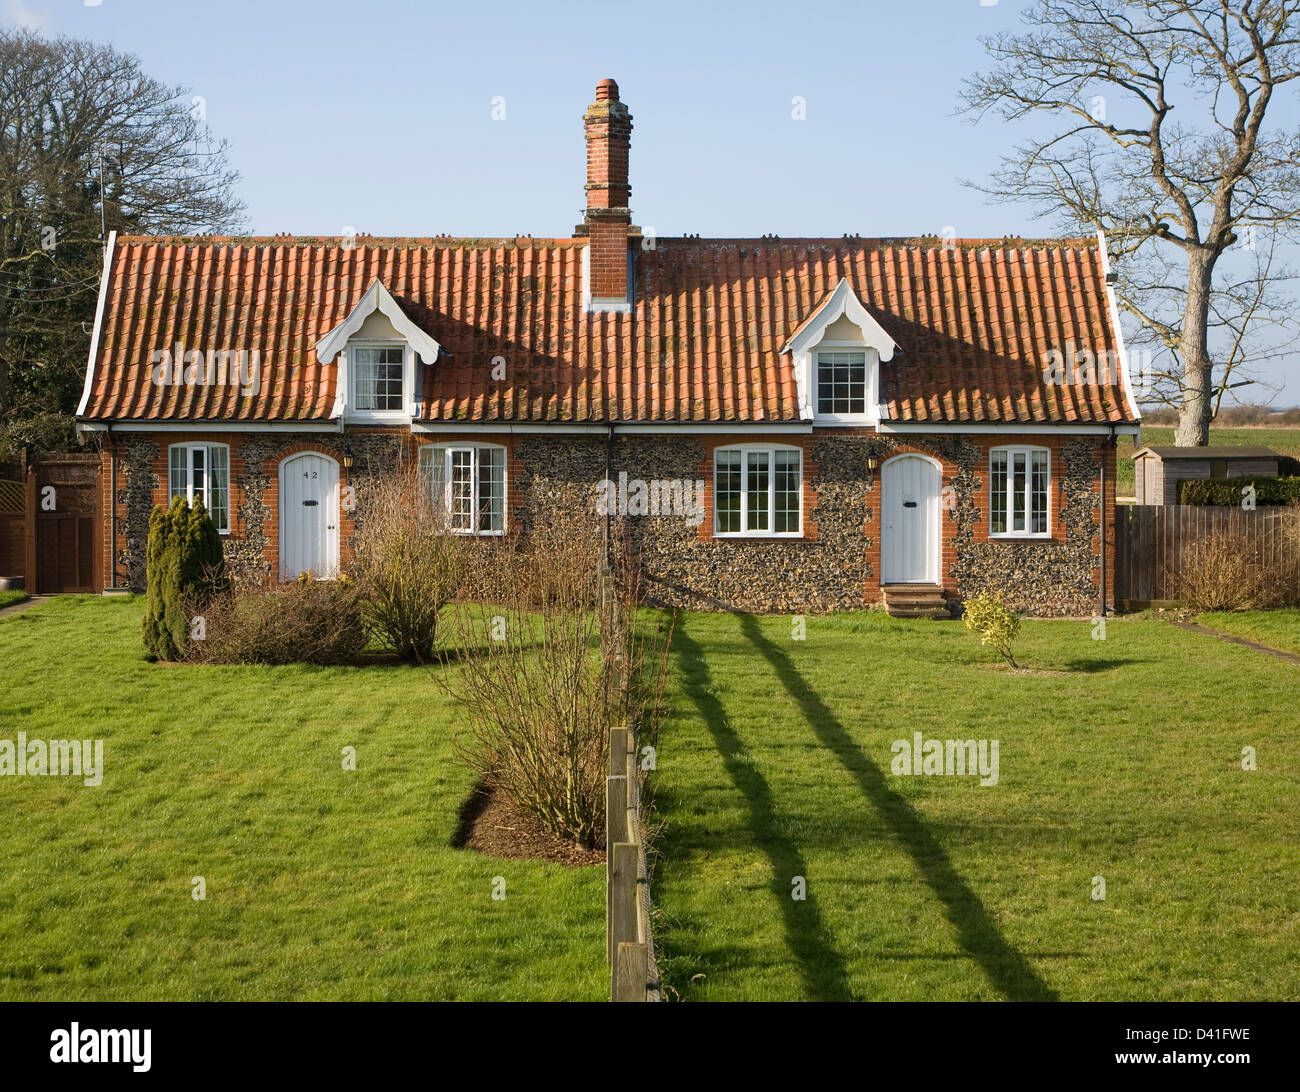 Small symmetrical estate cottages and gardens divided by fence, Suffolk, England - Stock Image